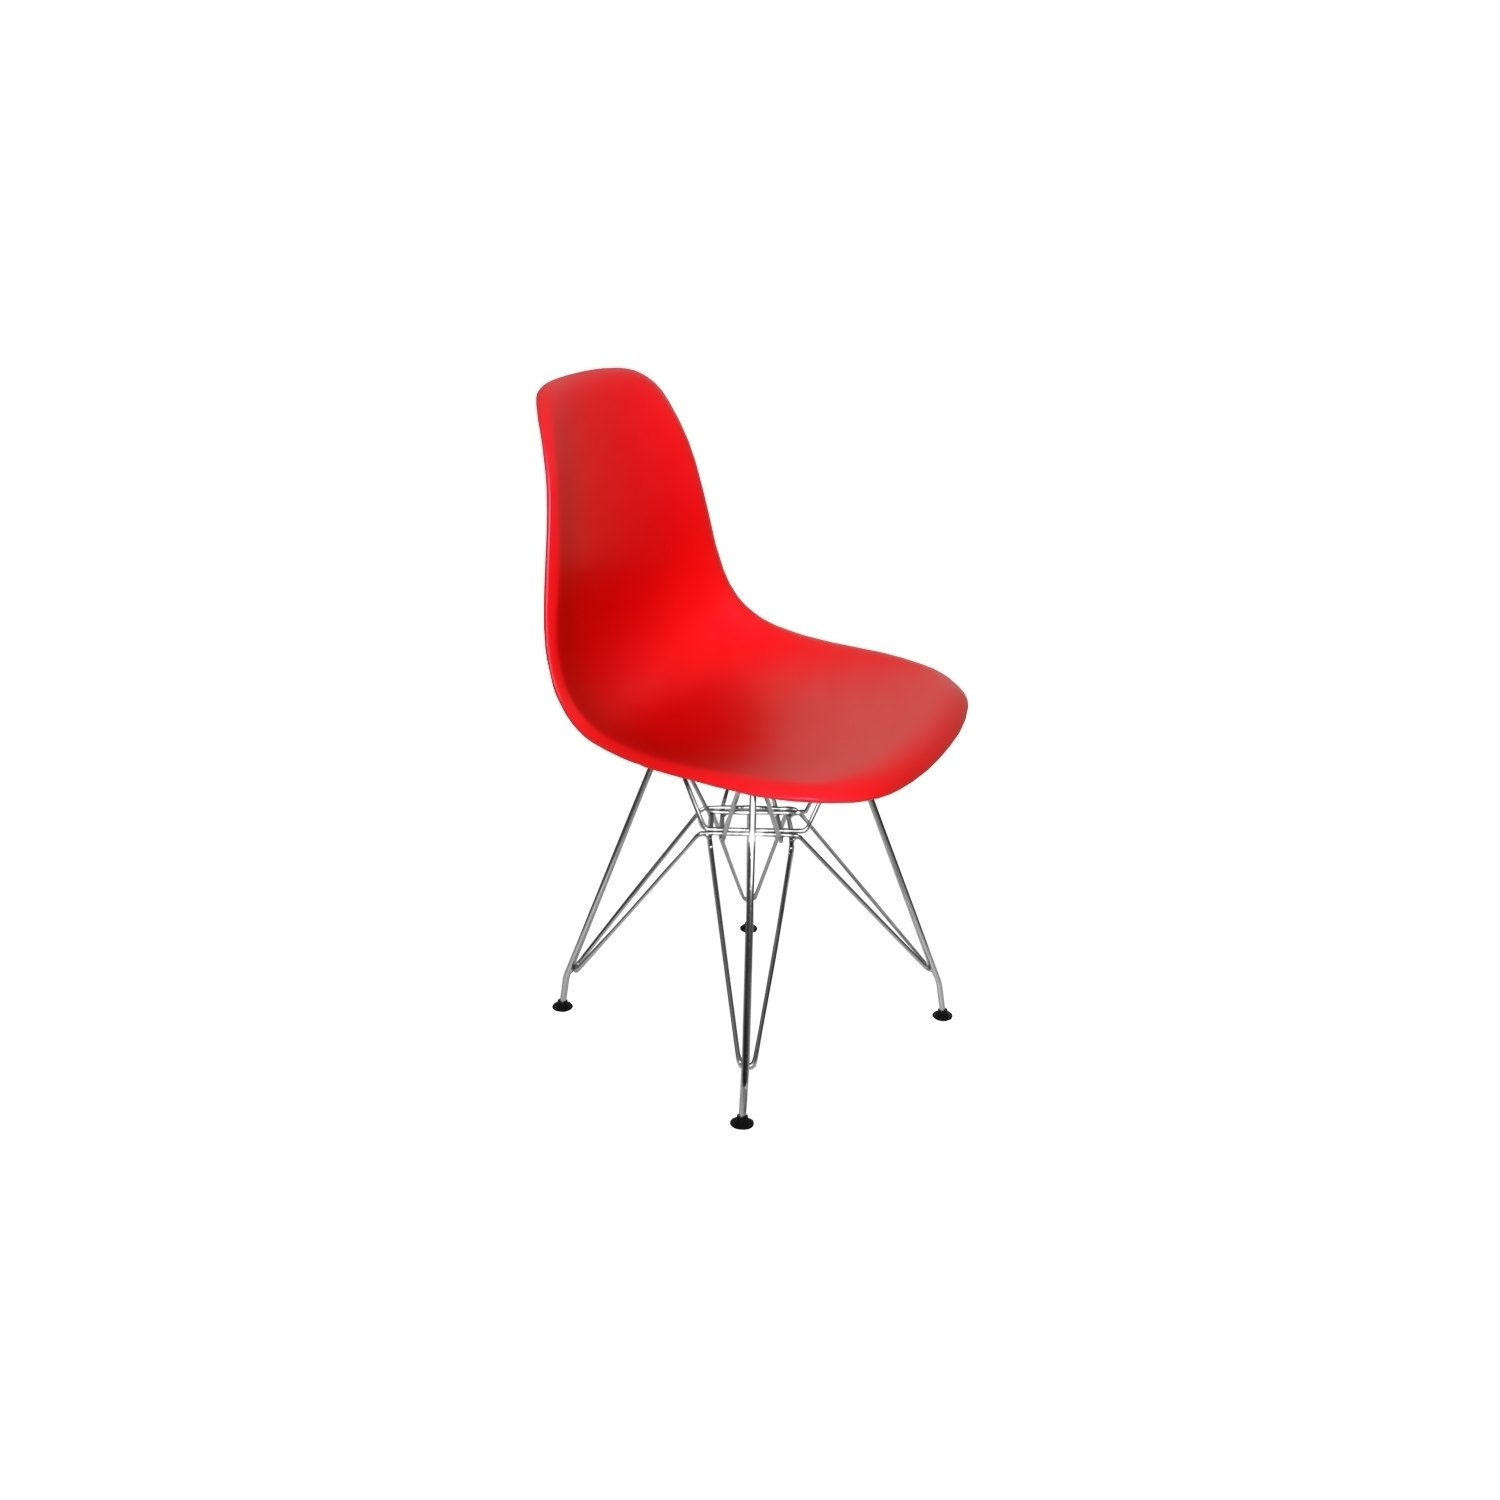 Comprar silla tower chrome roja sillas baratas online for Sillas rojas baratas